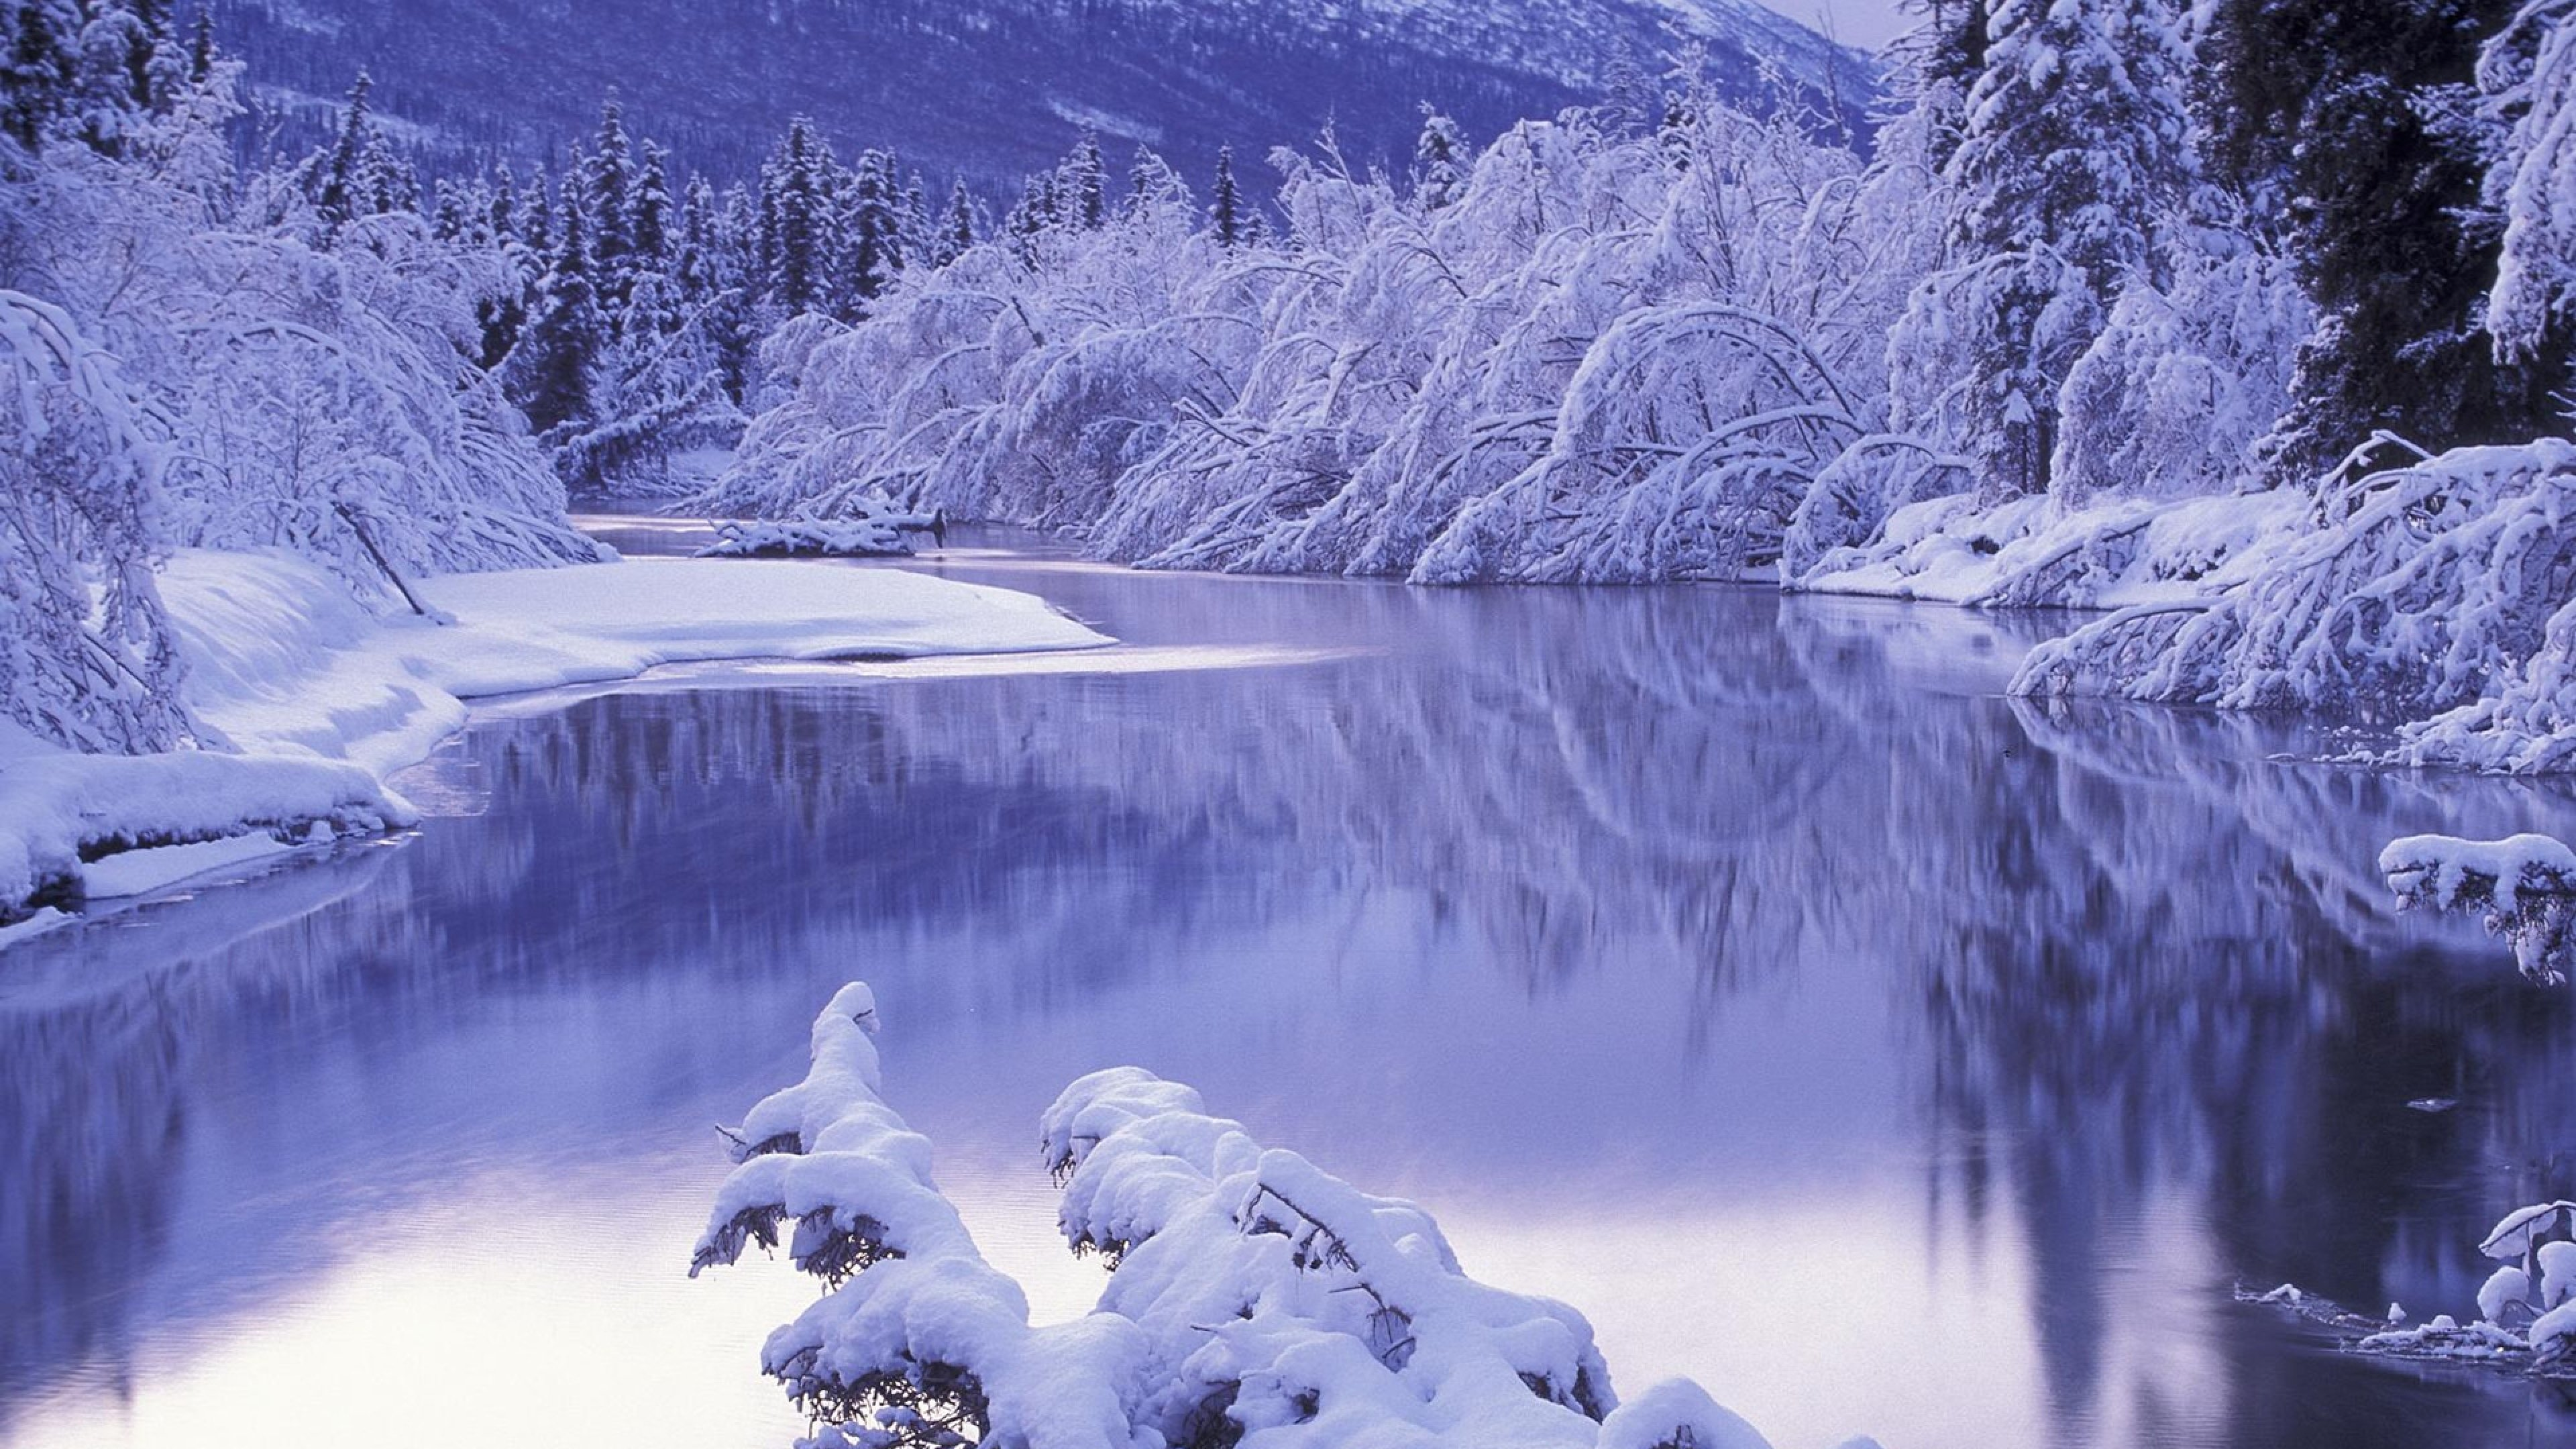 4k winter wallpaper wallpapersafari Beautiful snowfall pictures